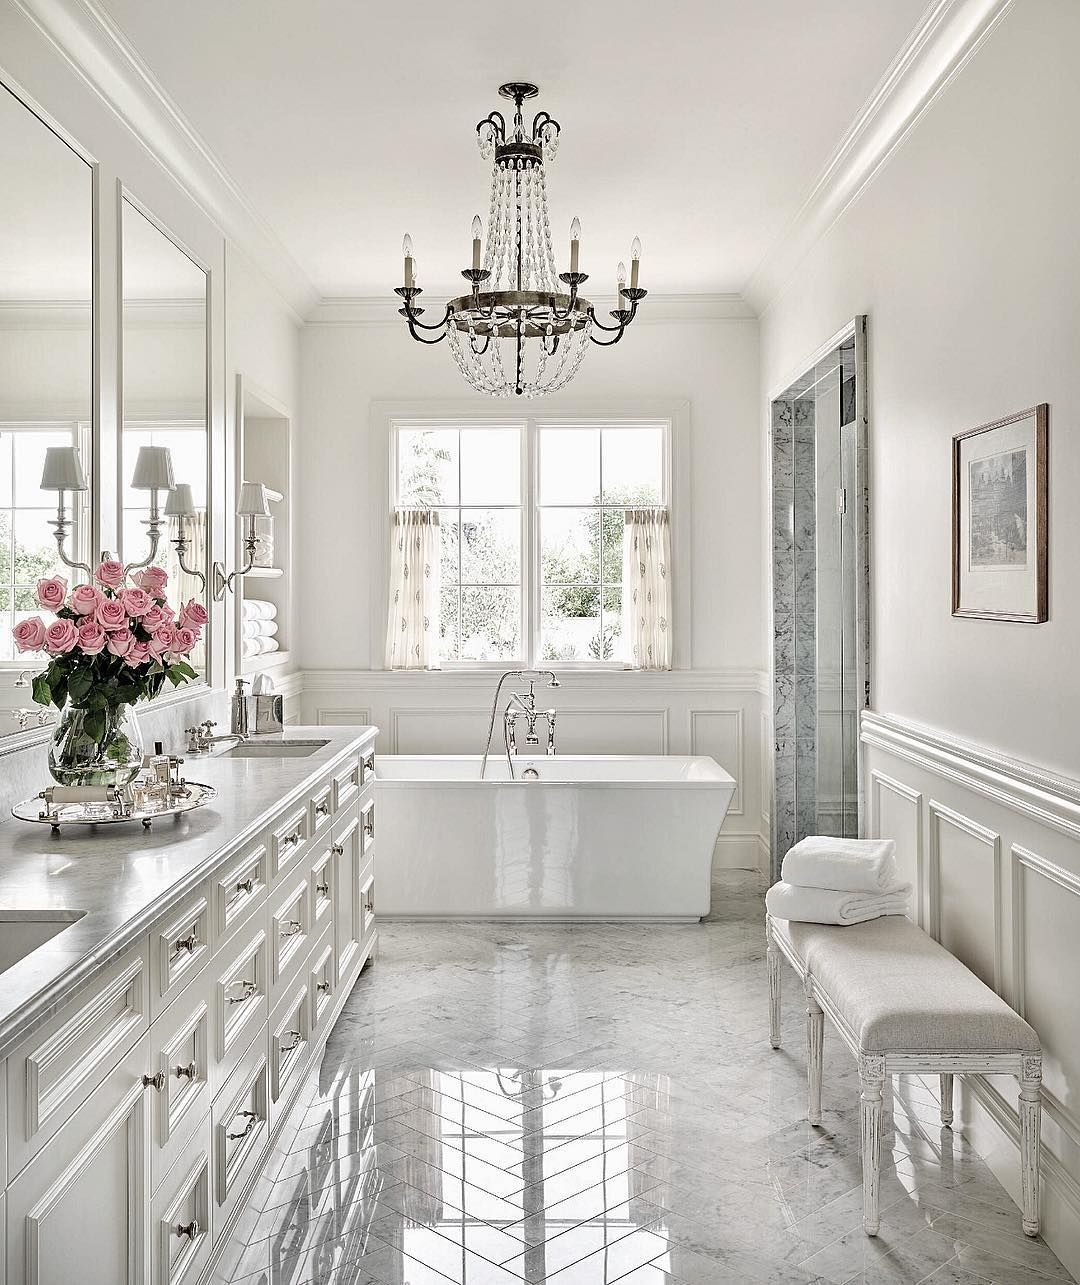 Pin by Ingrid on Bathrooms/Closets | Pinterest | Marble tiles ...